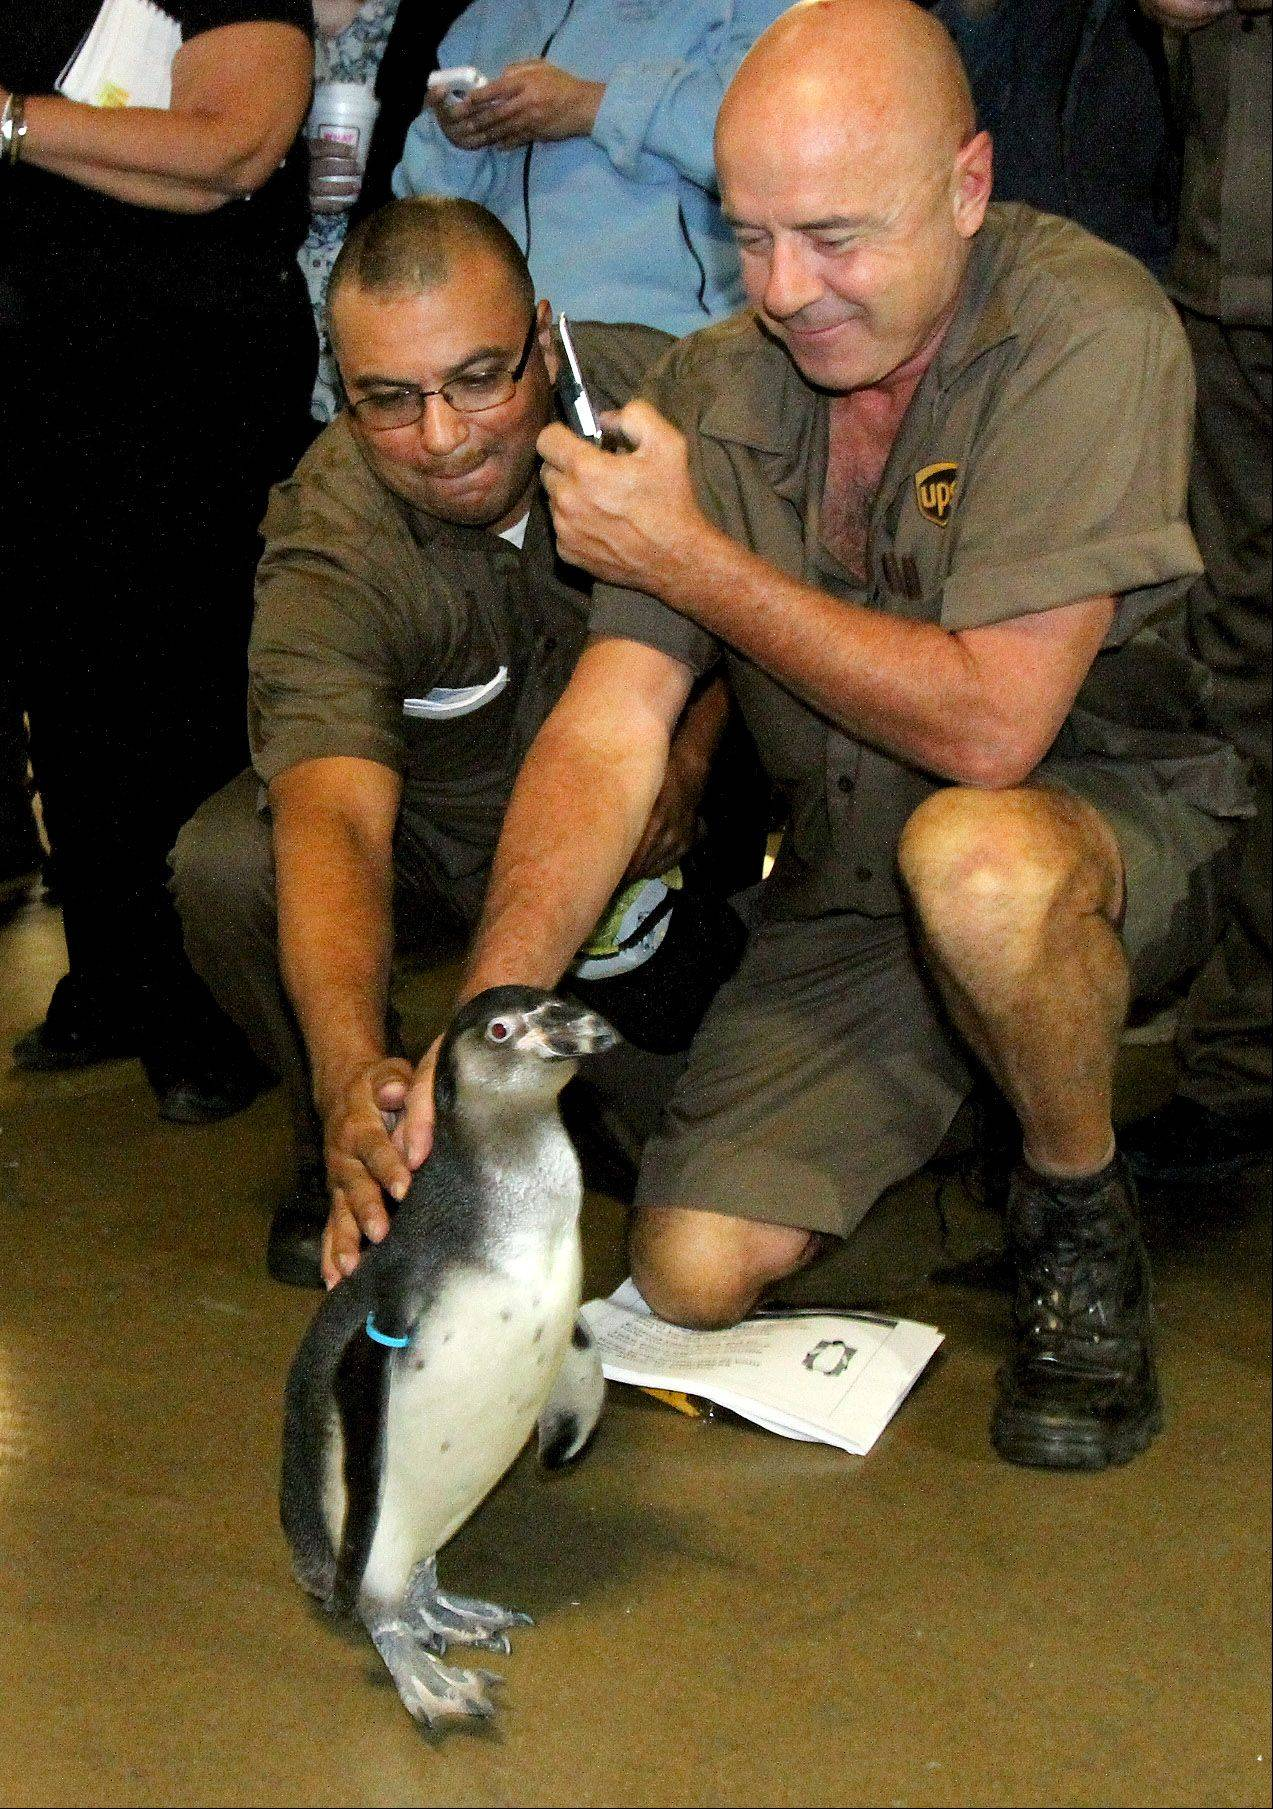 Pepe, a 6-month-old Humboldt penguin from Brookfield Zoo, greeted UPS employees in Addison Thursday as part of UPS's Walk Like a Penguin campaign.